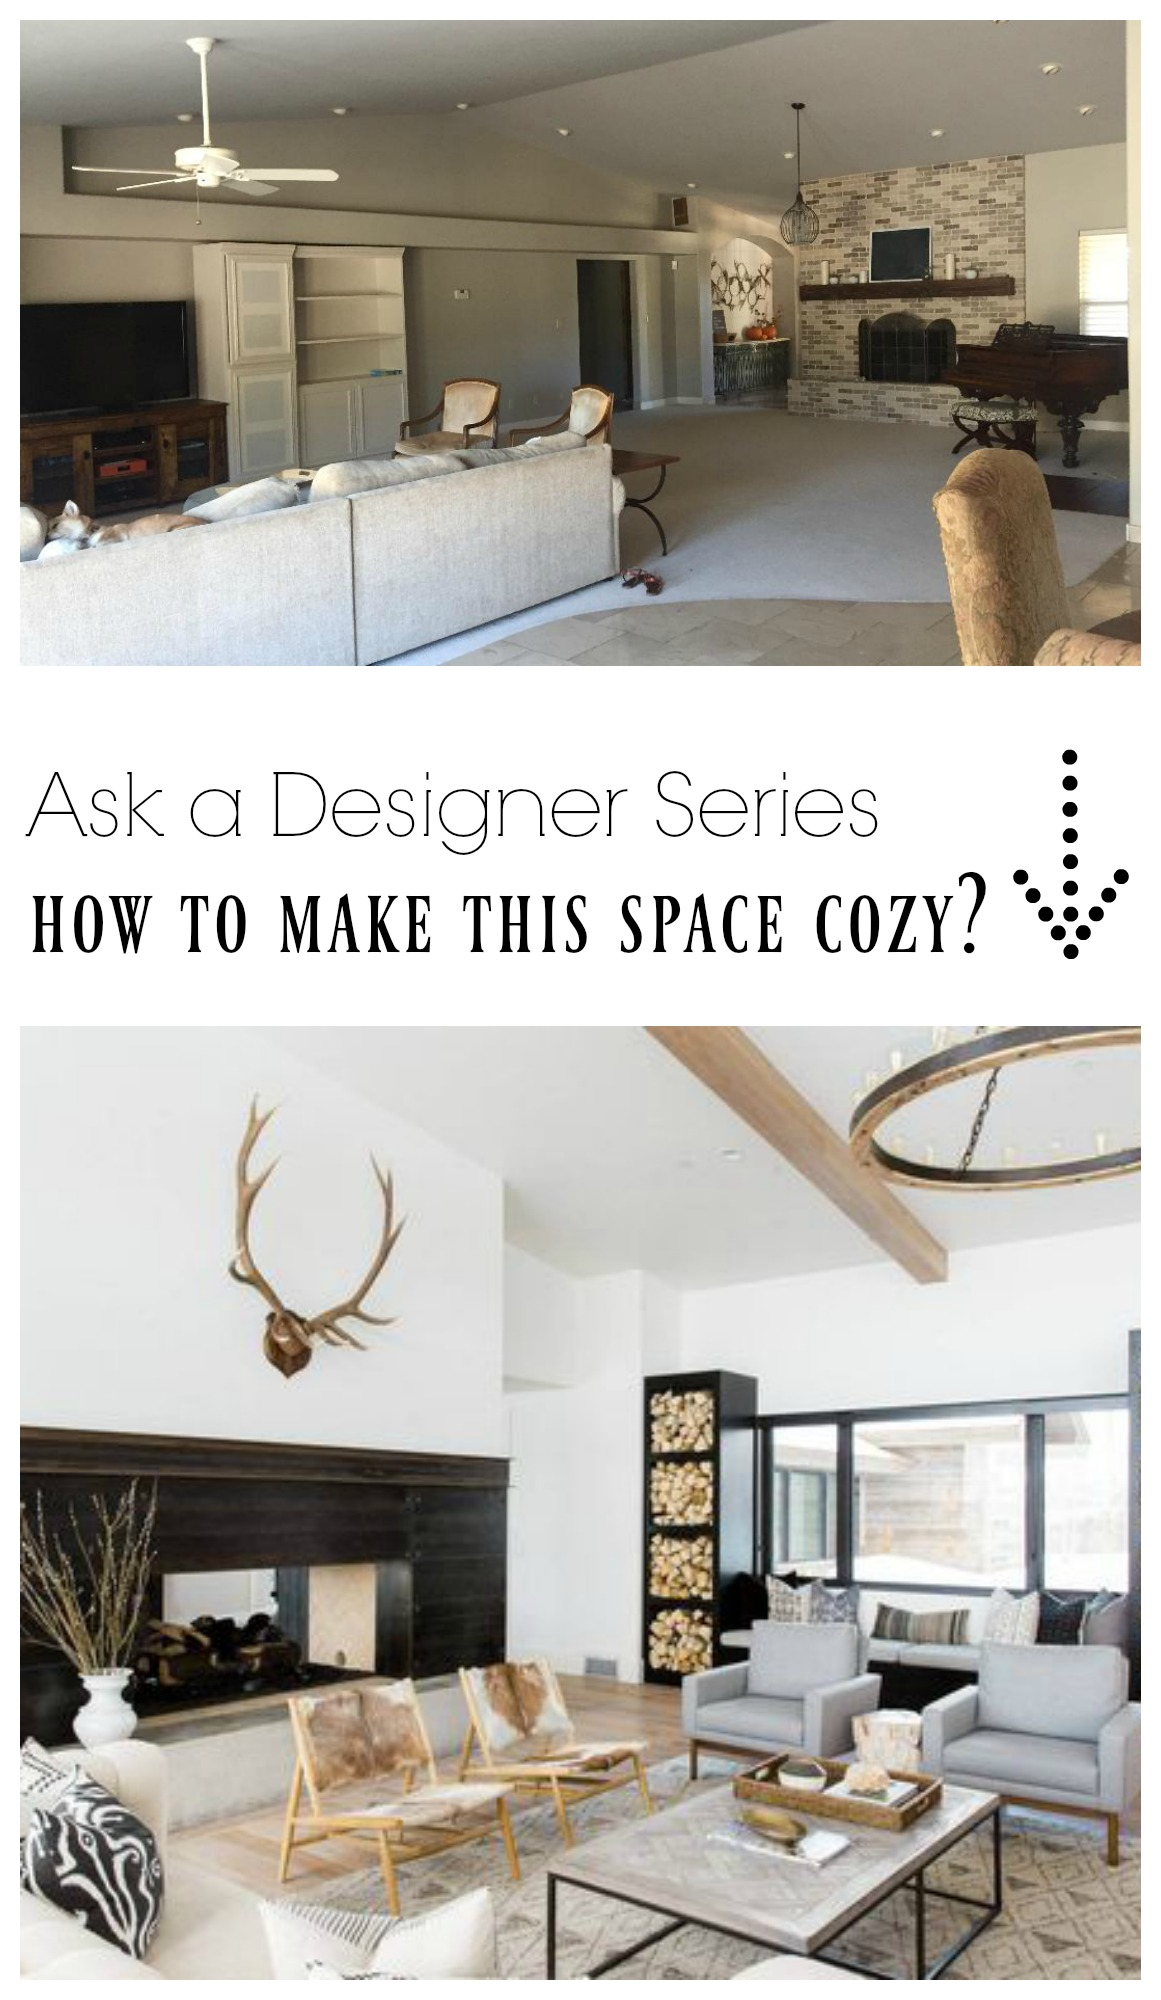 Ask a Designer Series- How do I make this Large open space cozy?